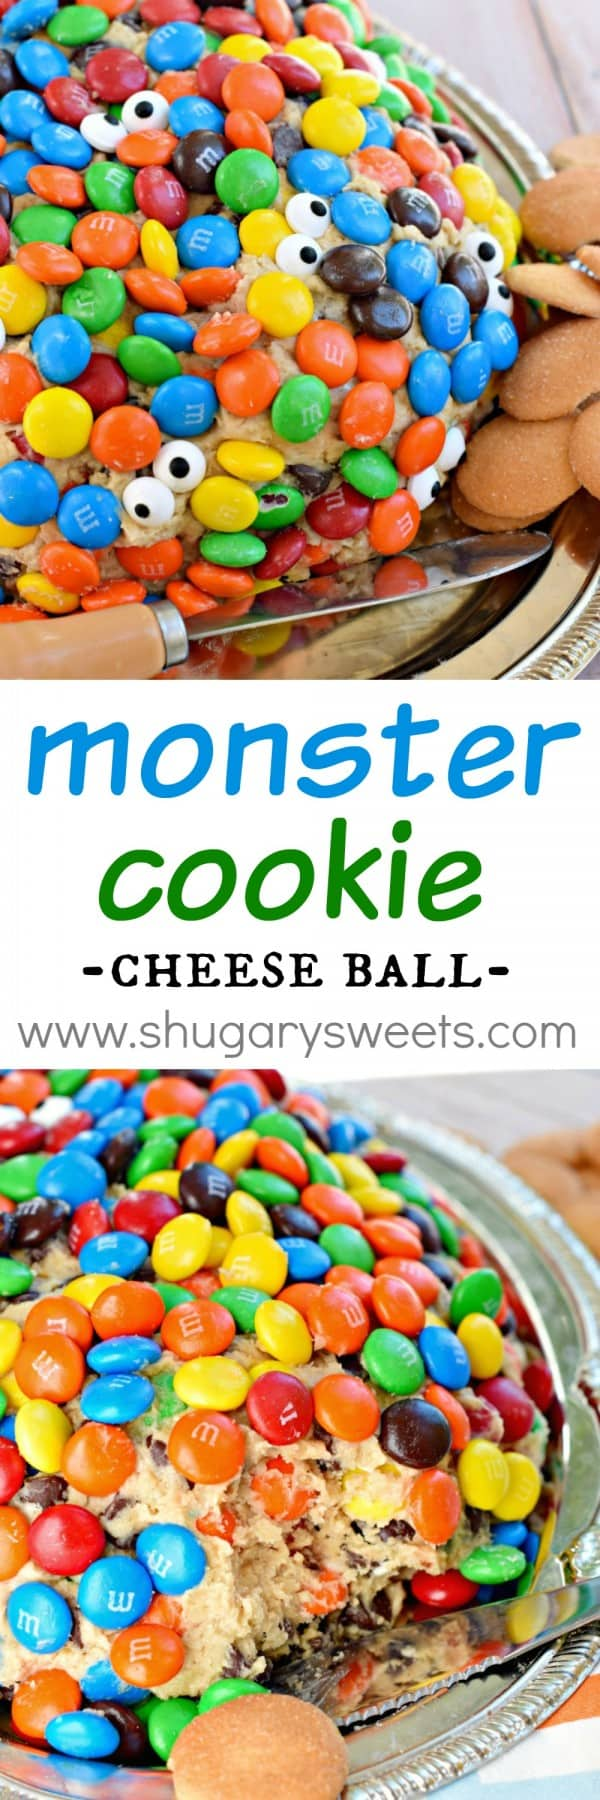 This Monster Cookie Cheese Ball recipe is a crowd pleaser! Stuffed with candy, chocolate and peanut butter, you're going to want to try this soon!